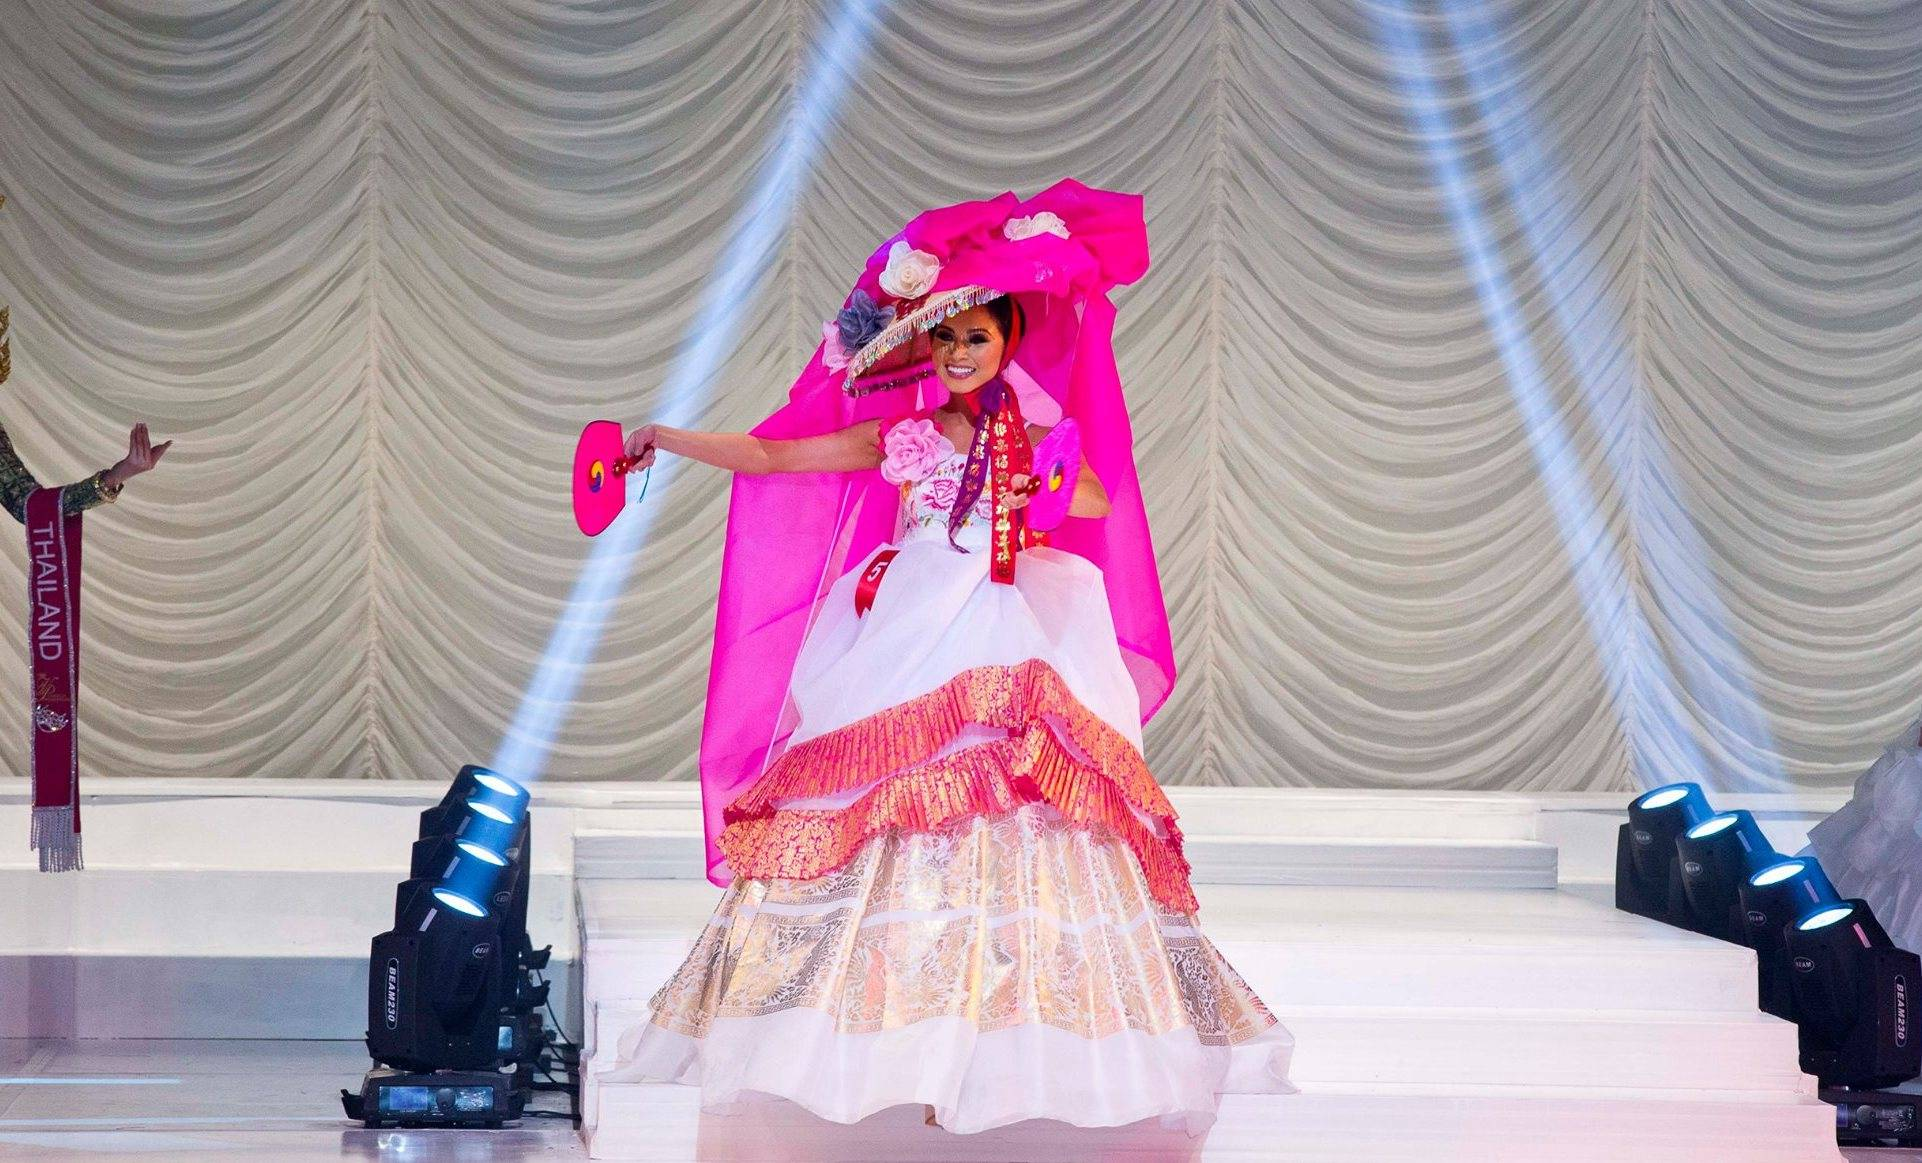 ASHLEY WILLIAMS IN A MODERN HANBOK DRESS FOR PAGEANT SHOW MISS ASIA USA.